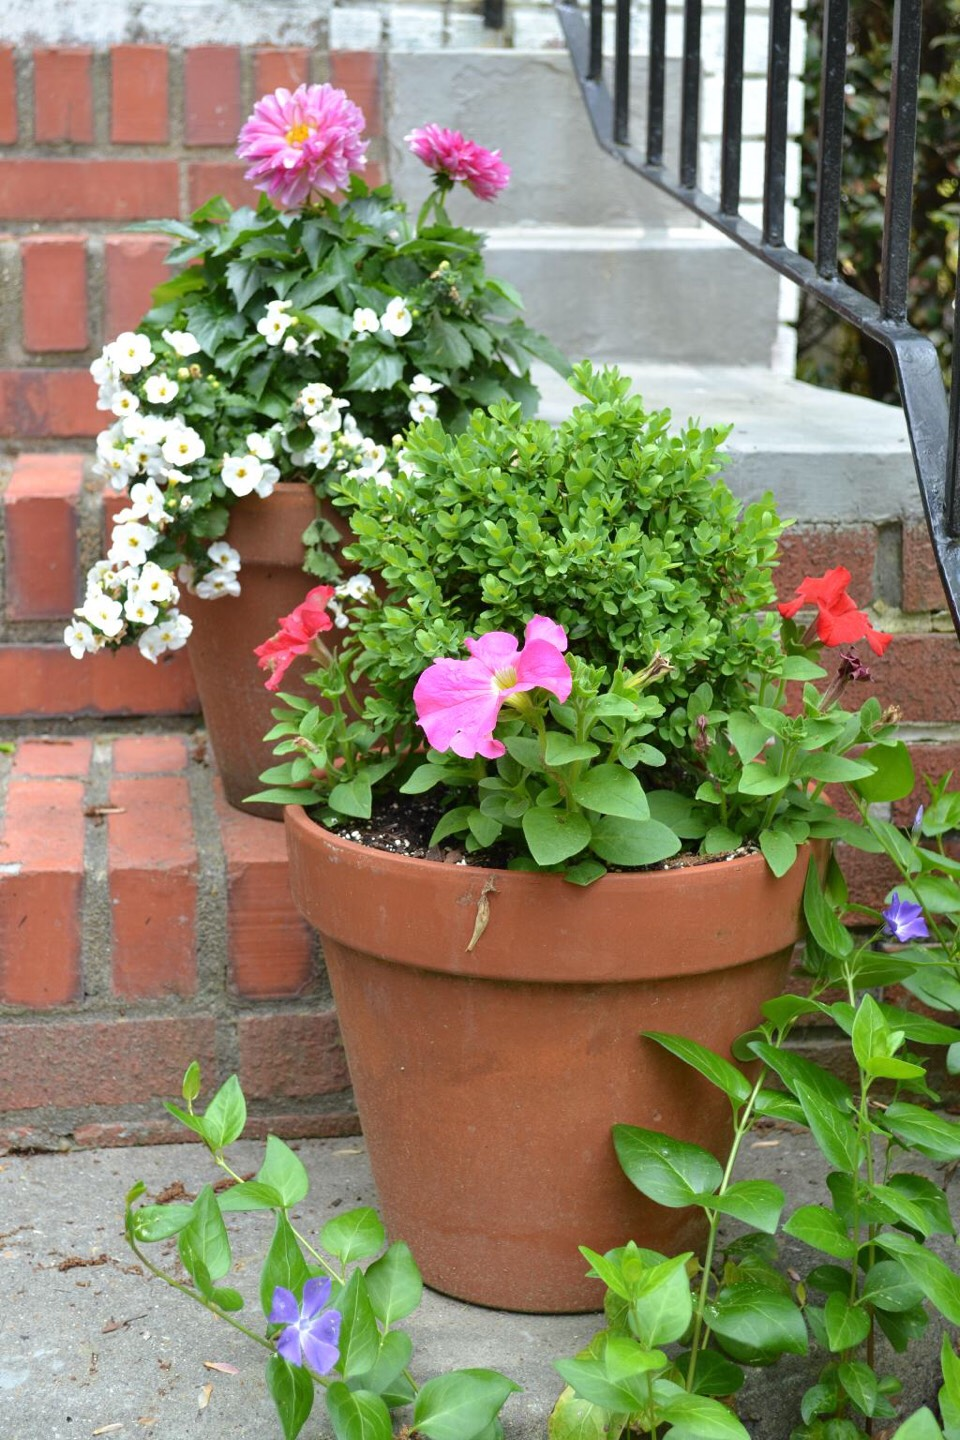 Bring potted plants inside before the temperature drops below freezing.